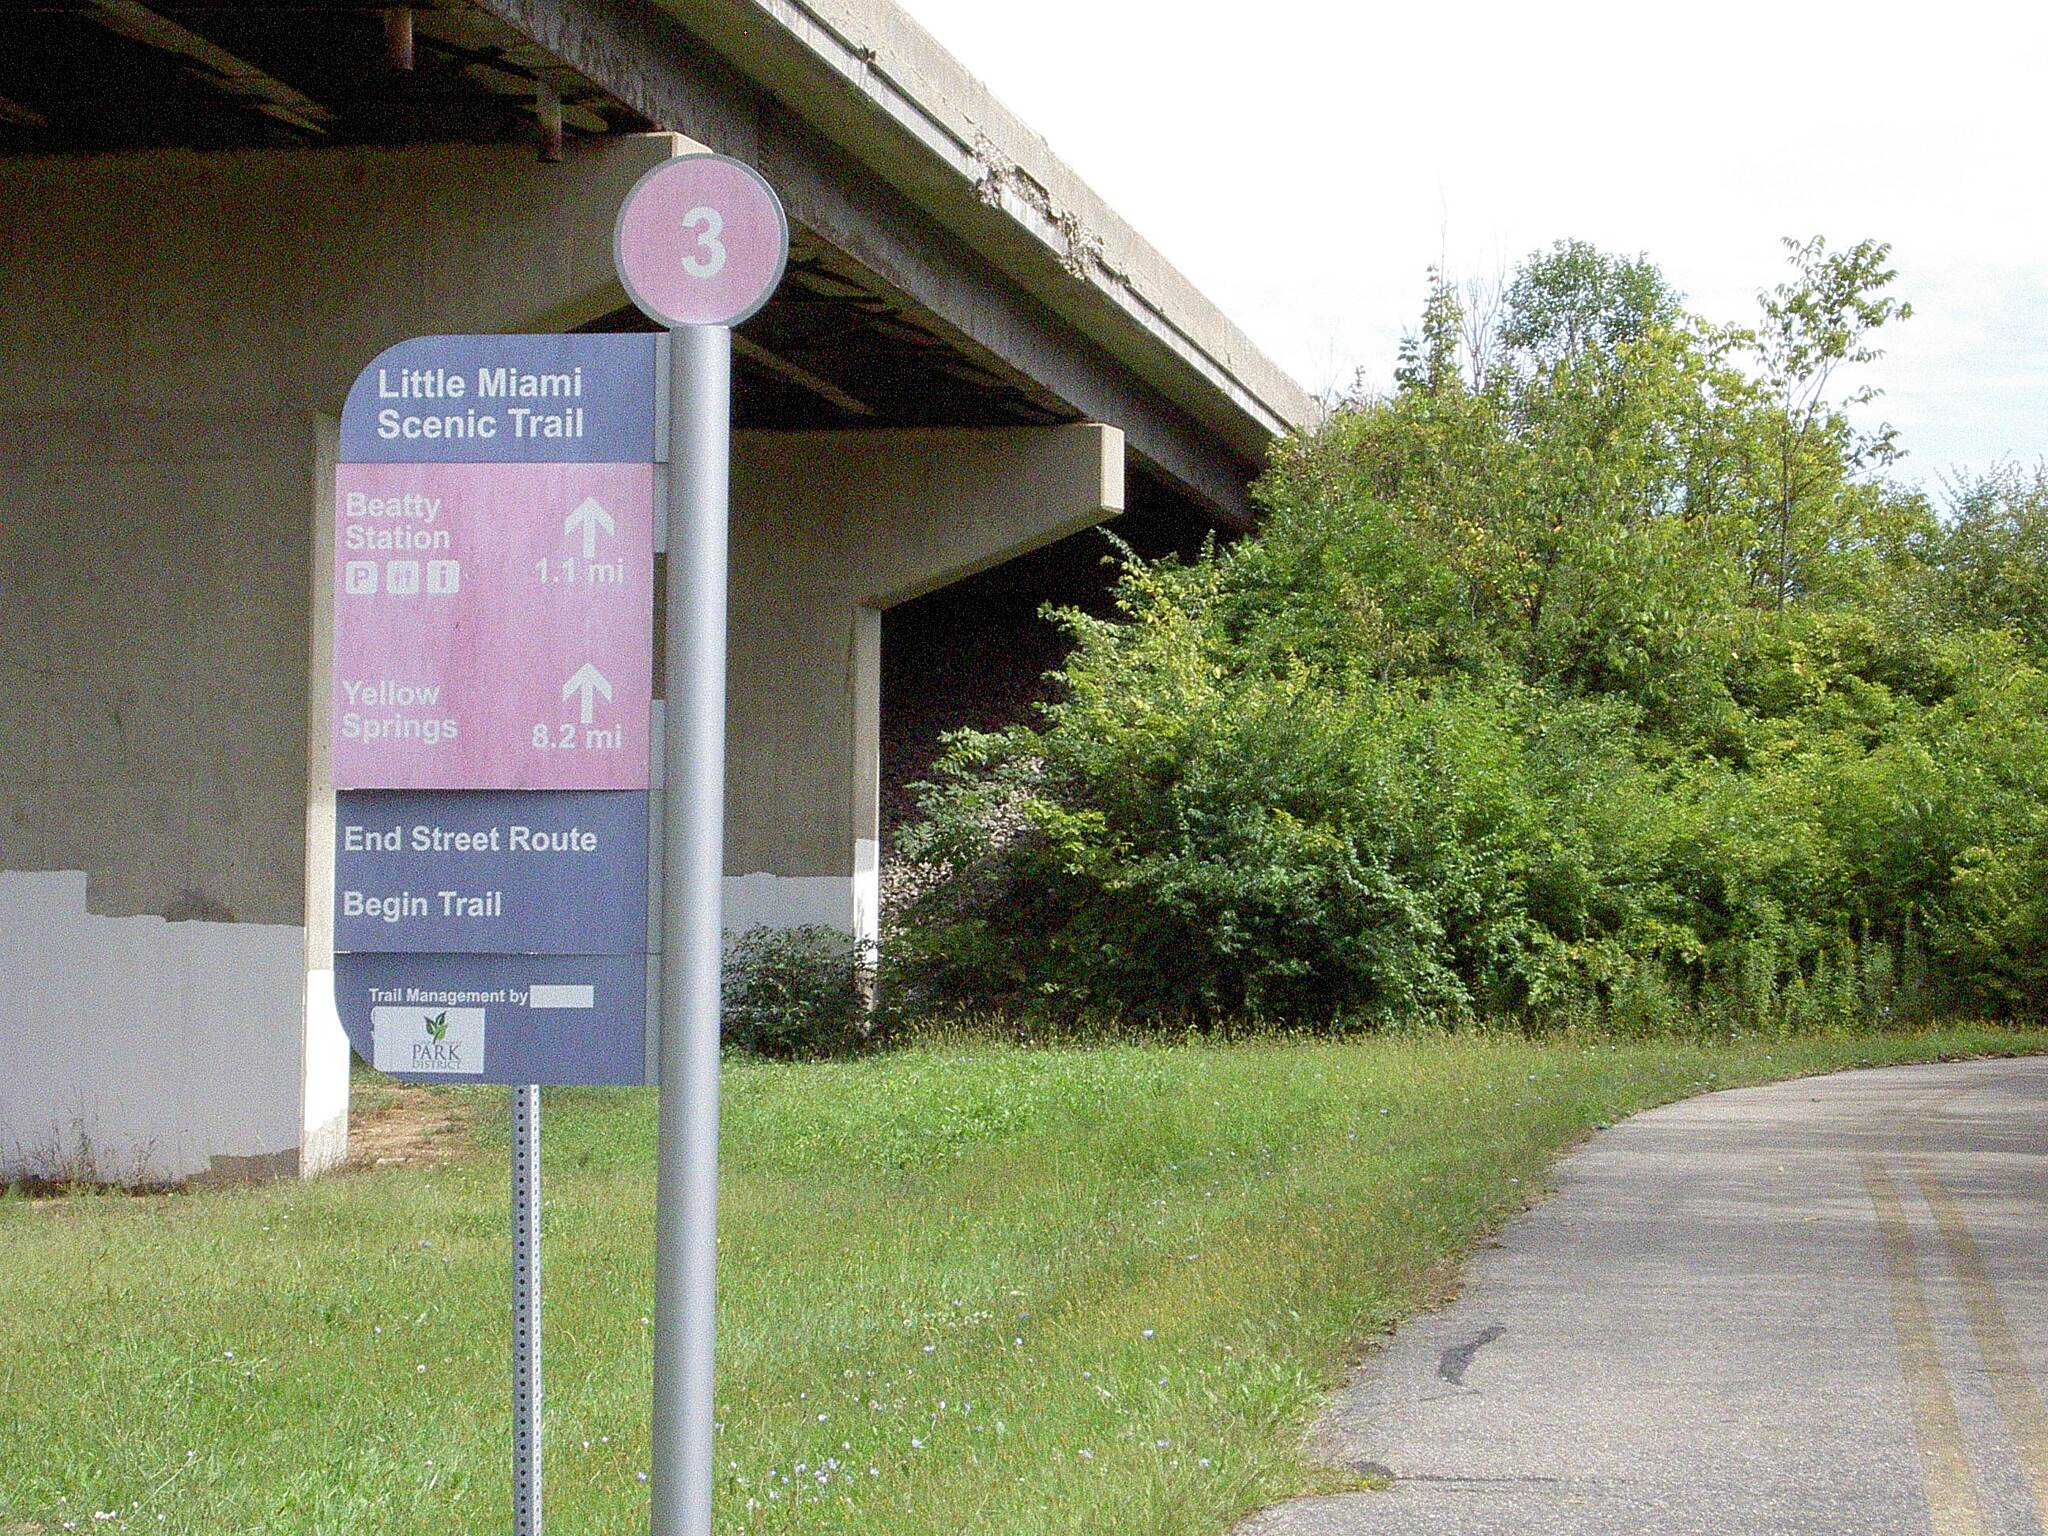 Little Miami Scenic Trail Sign in Springfield Sept 2014 This sign is correct – the street routes end here heading South on the RR right-of-way